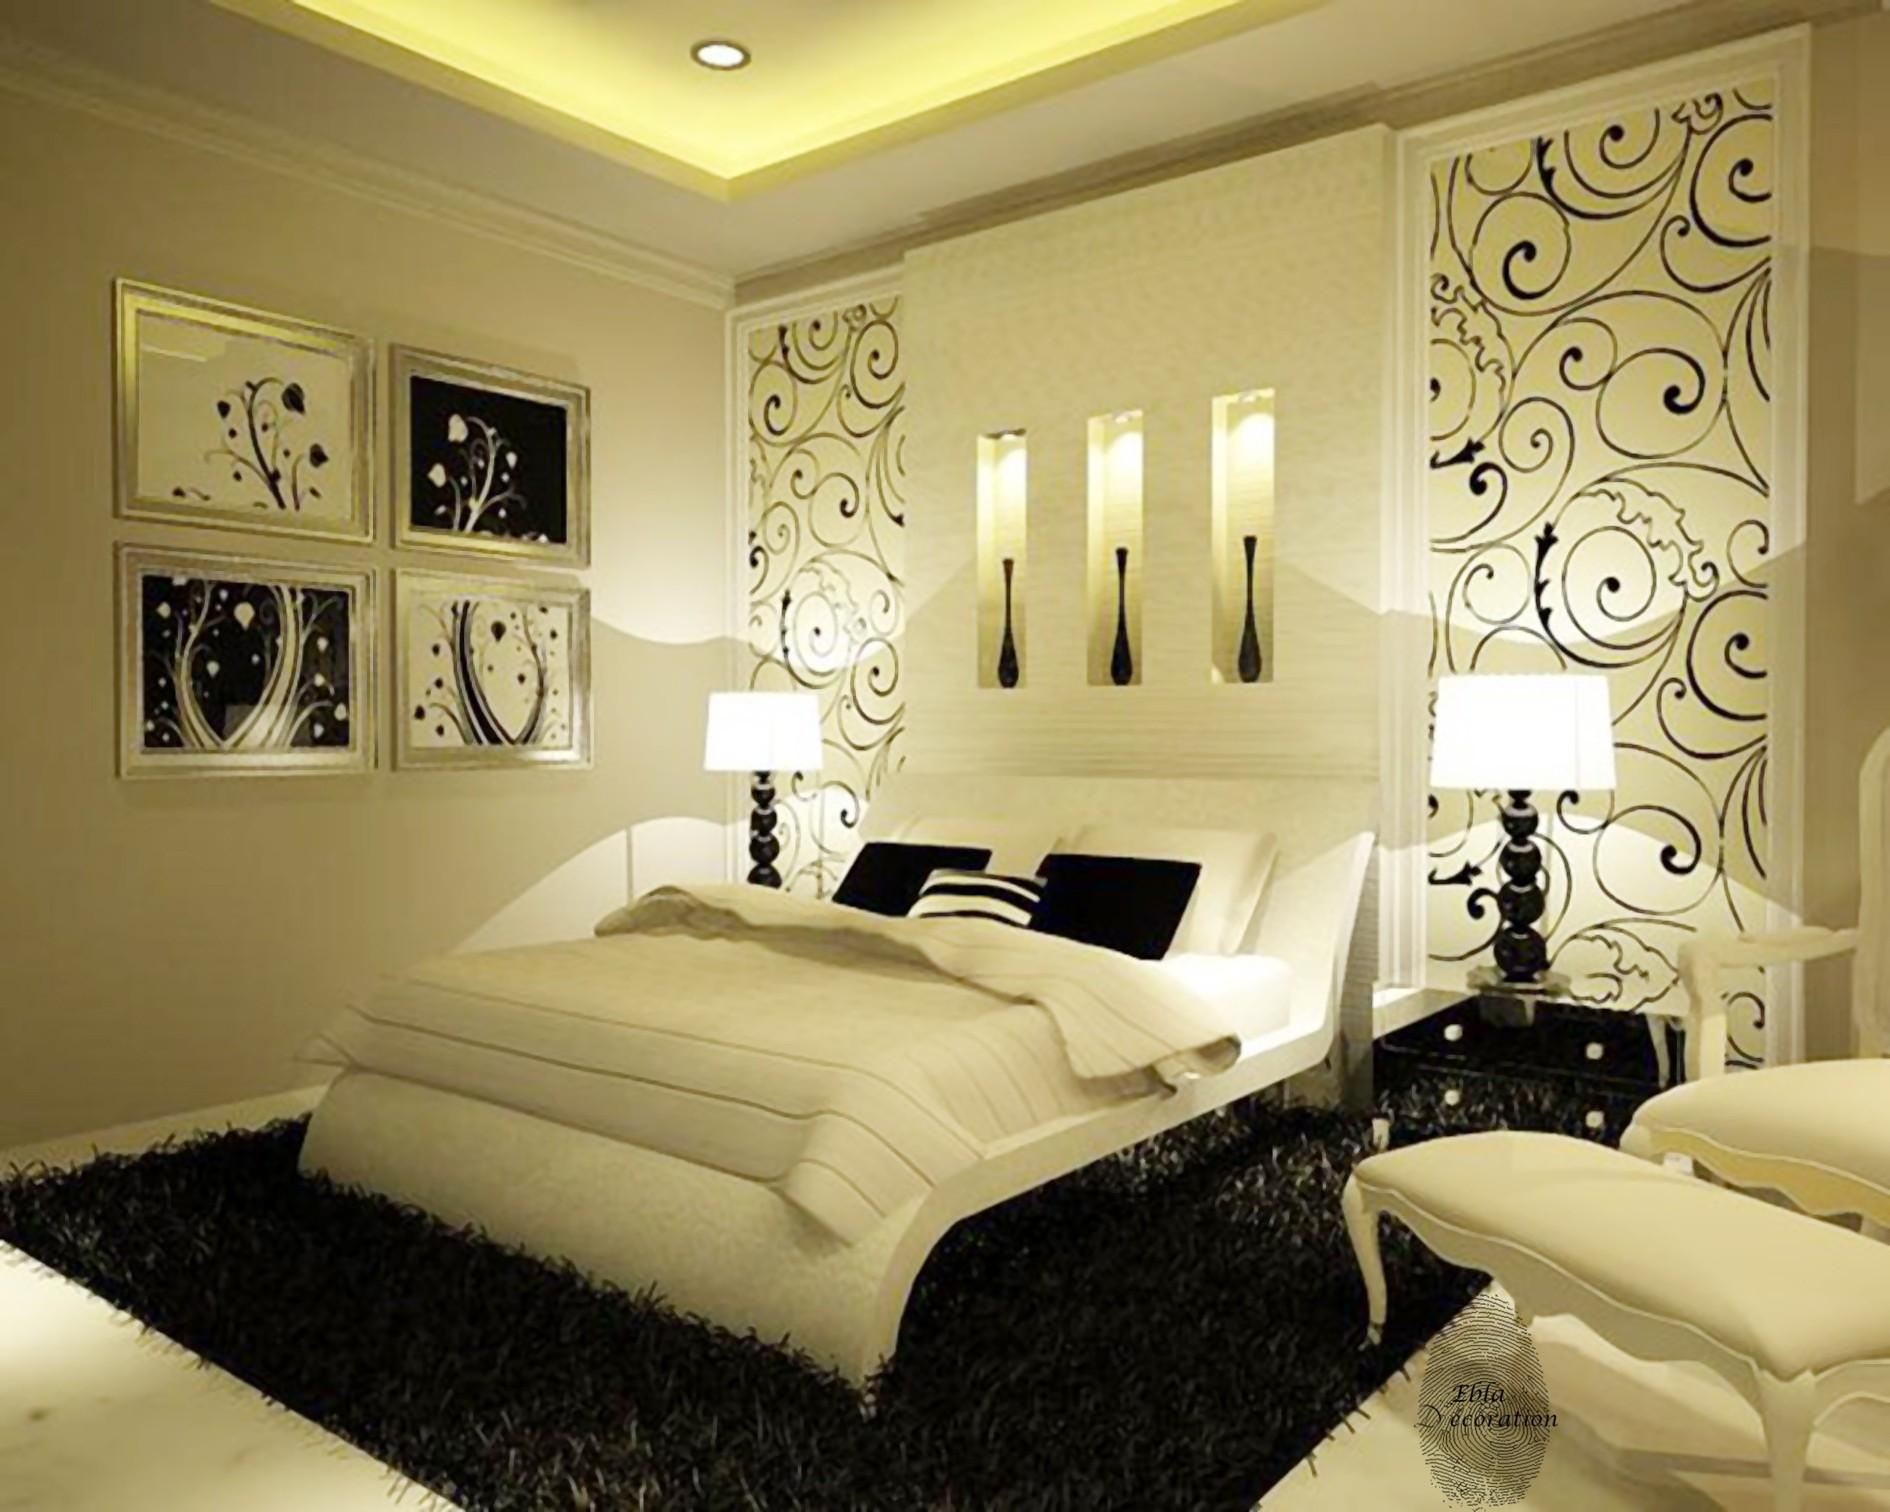 Bedroom Decorating Ideas Small Master Home